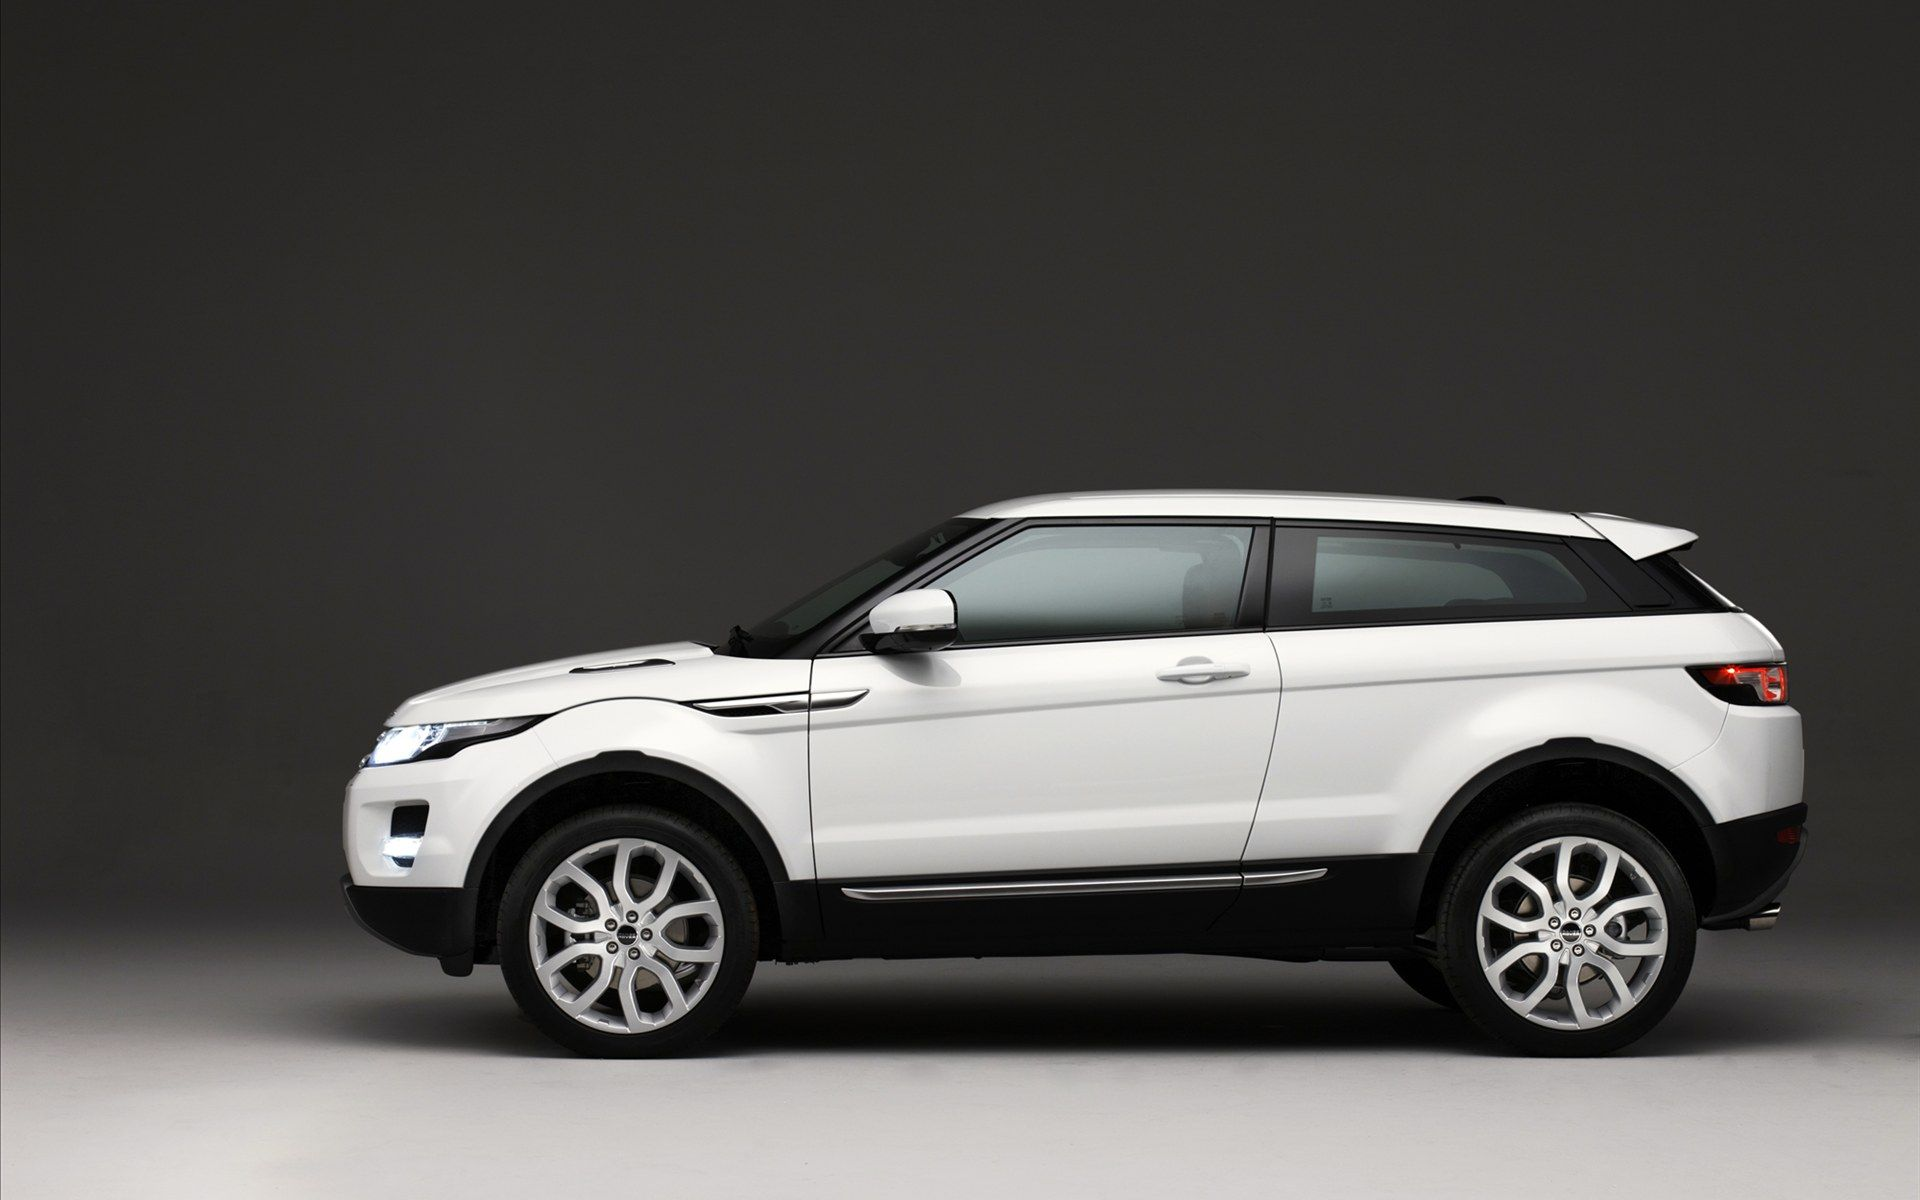 2011 Land Rover Range Rover Evoque new generation